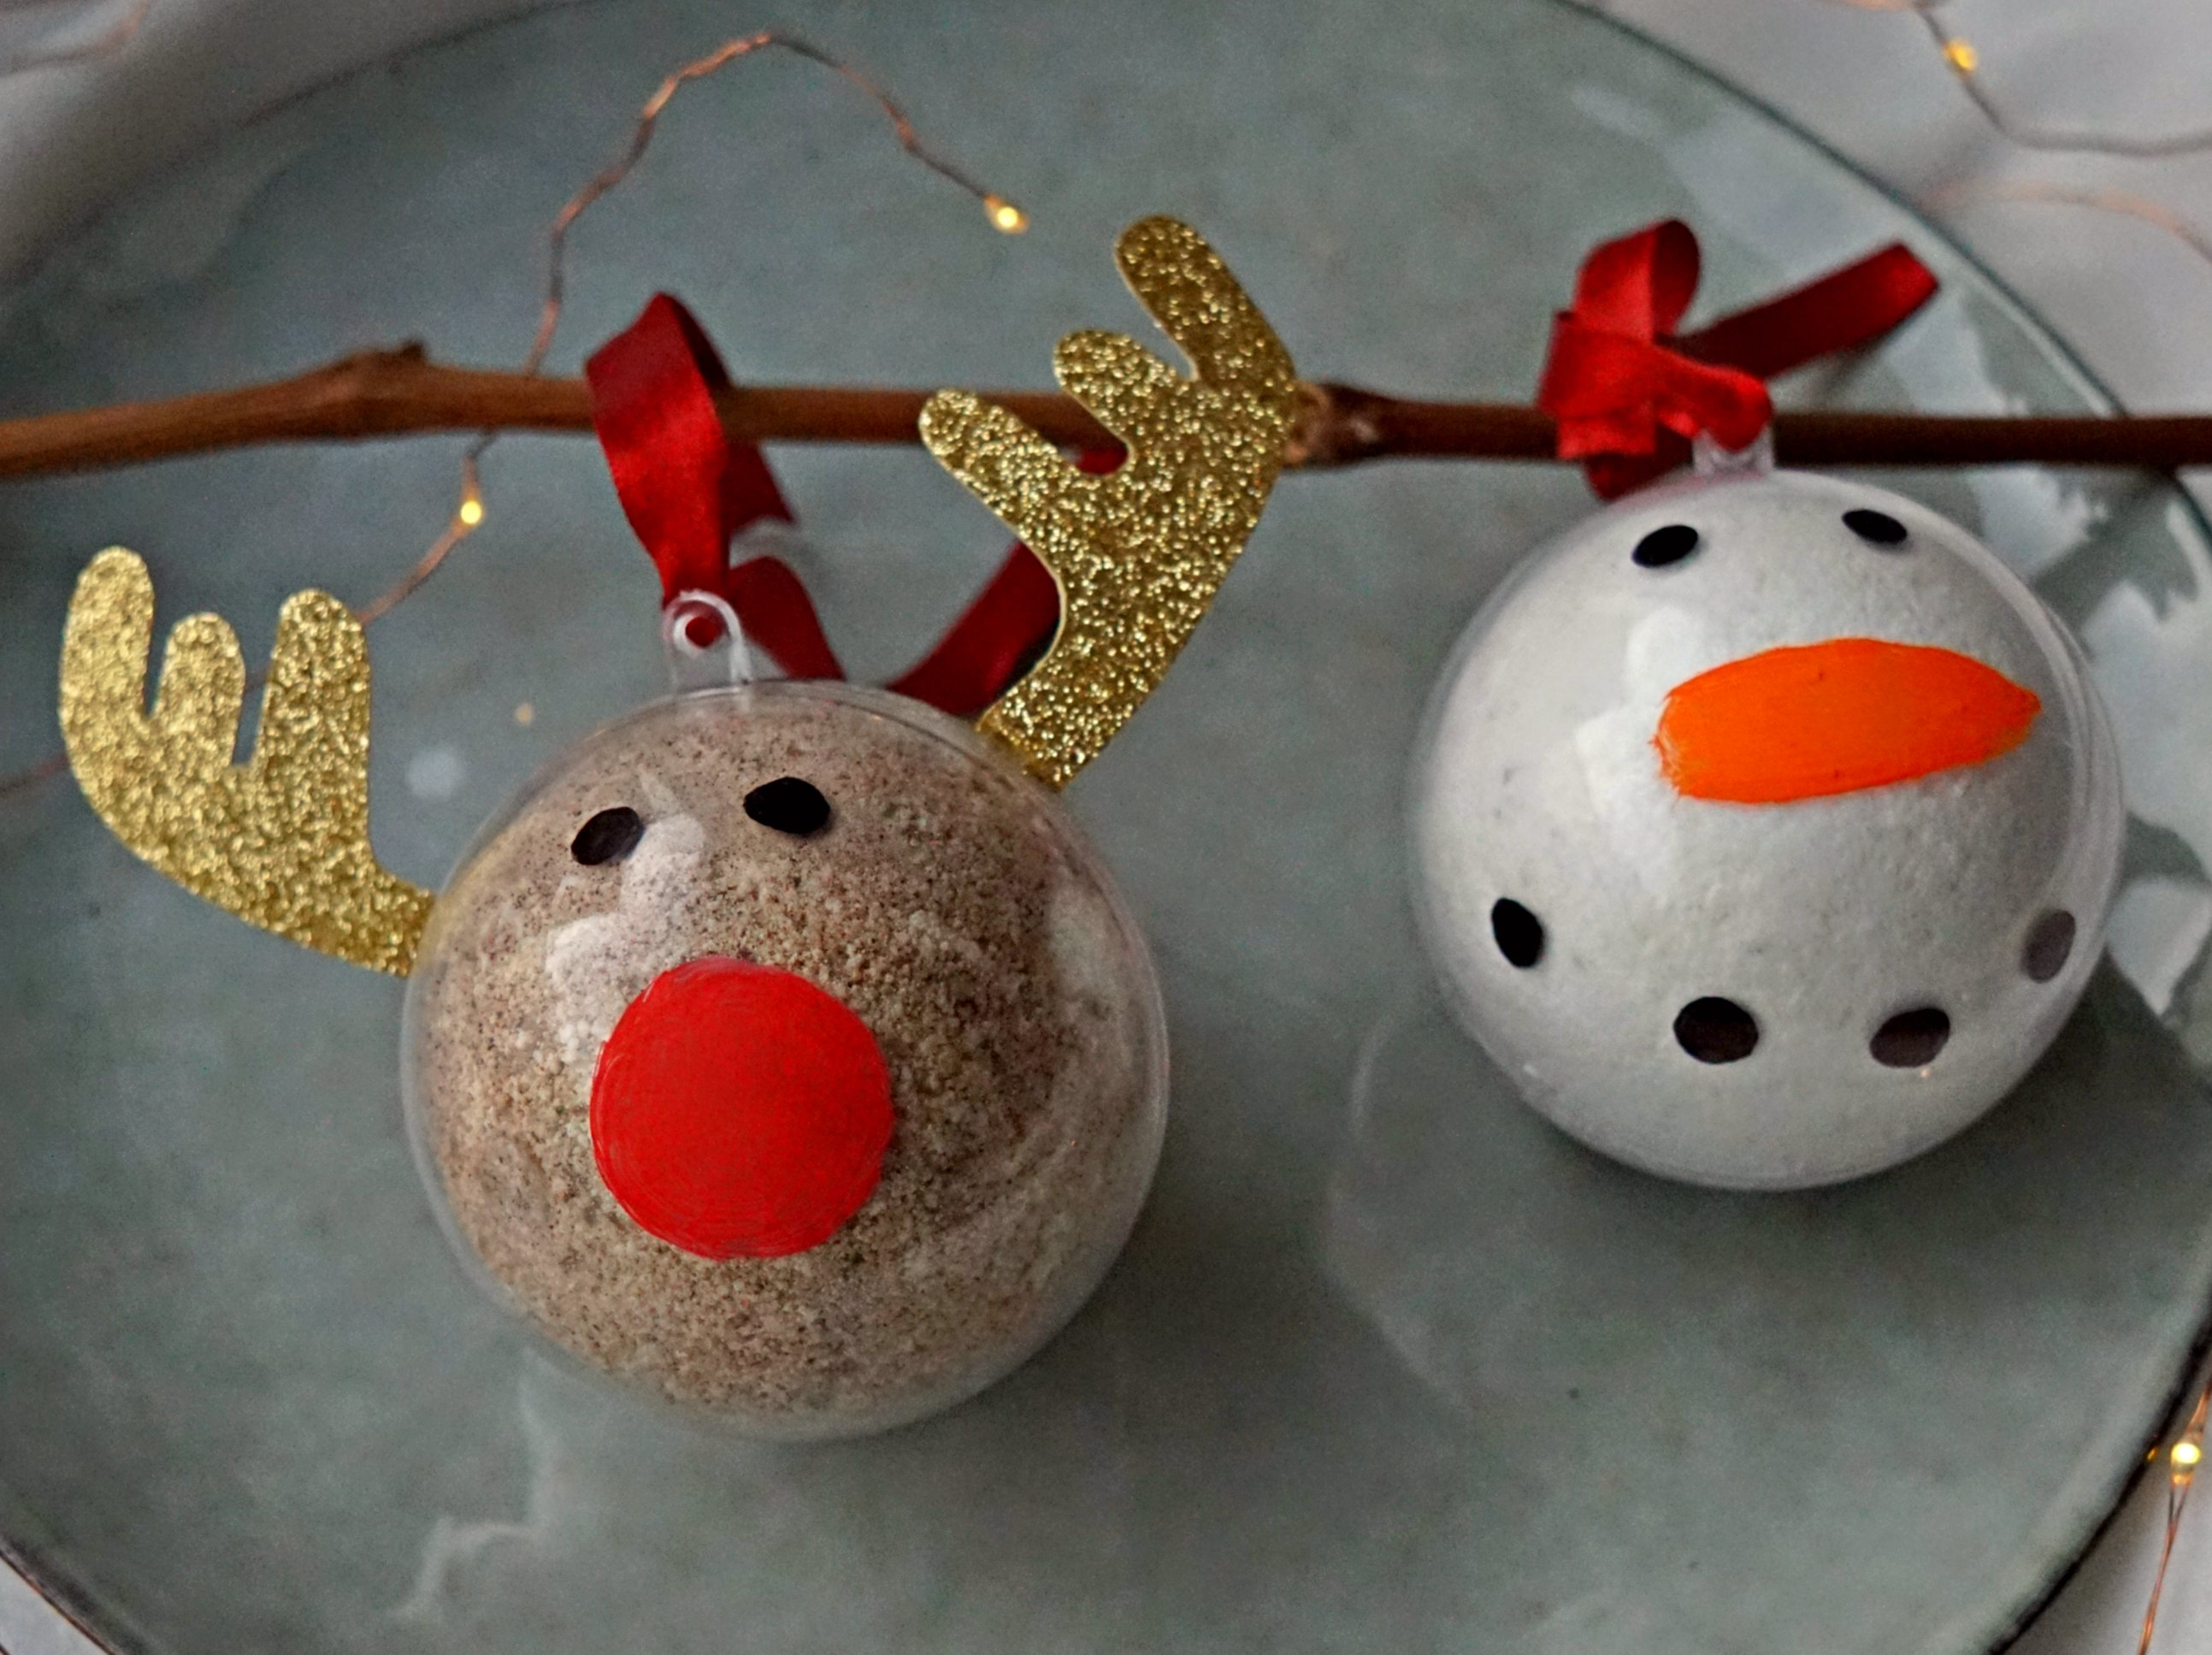 DIY Holiday Bath Bomb Ornaments HowTo Tutorial by The Makeup Dummy #diygifts #christmasgifts